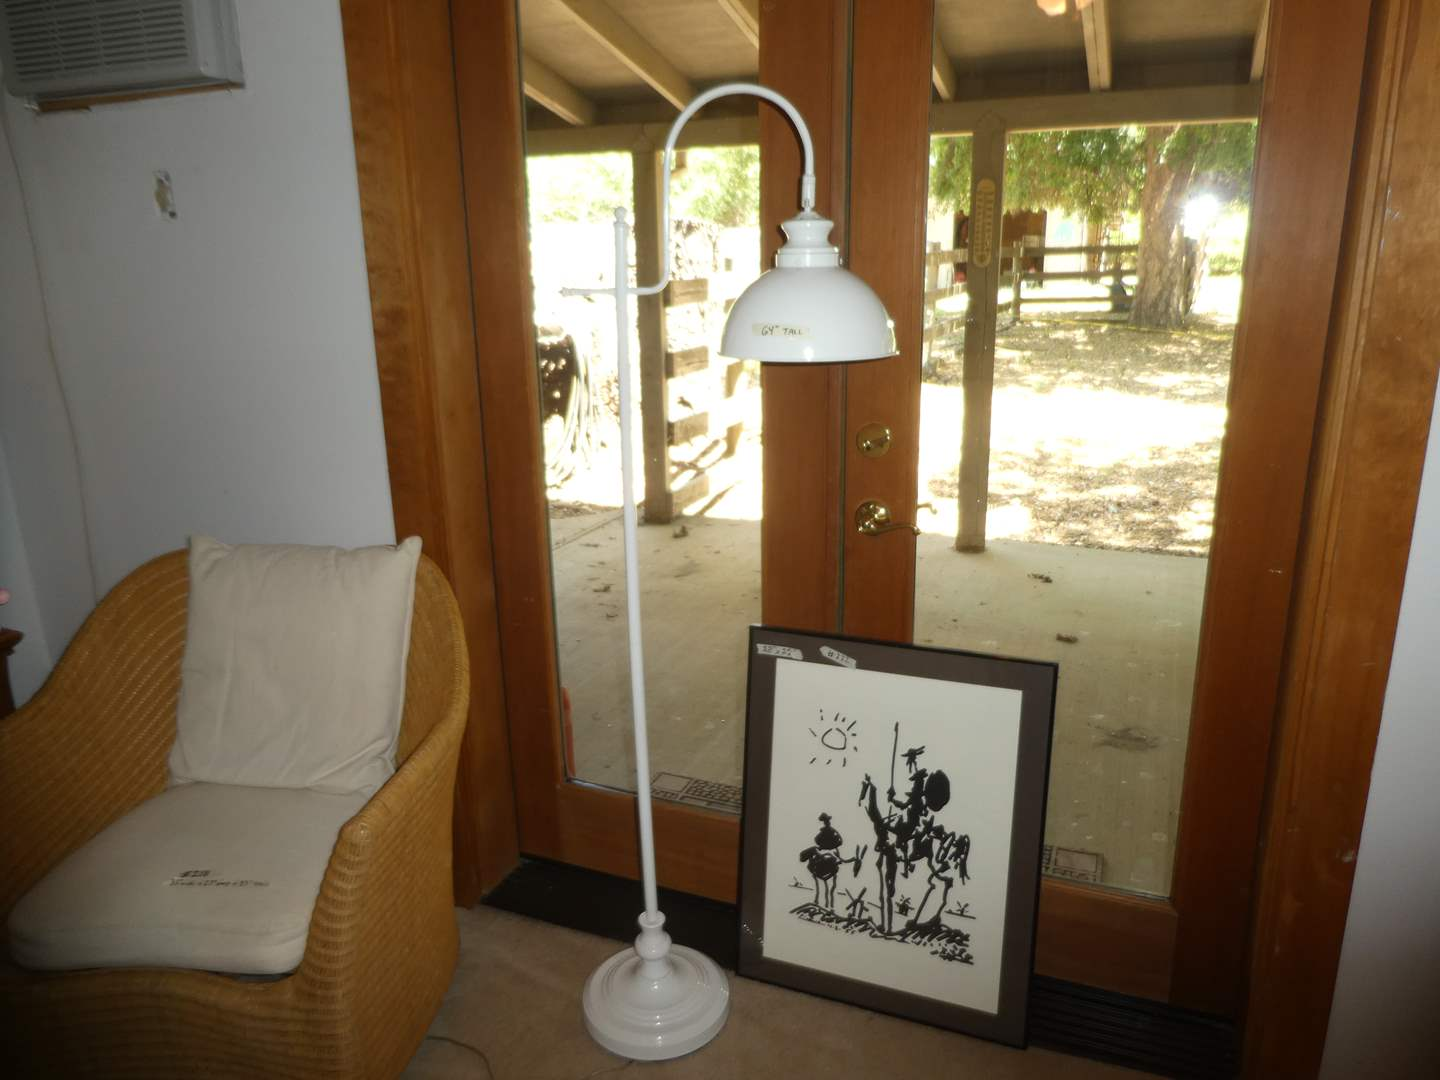 Lot # 222 - Unique Framed Print and Vintage Style Floor Lamp